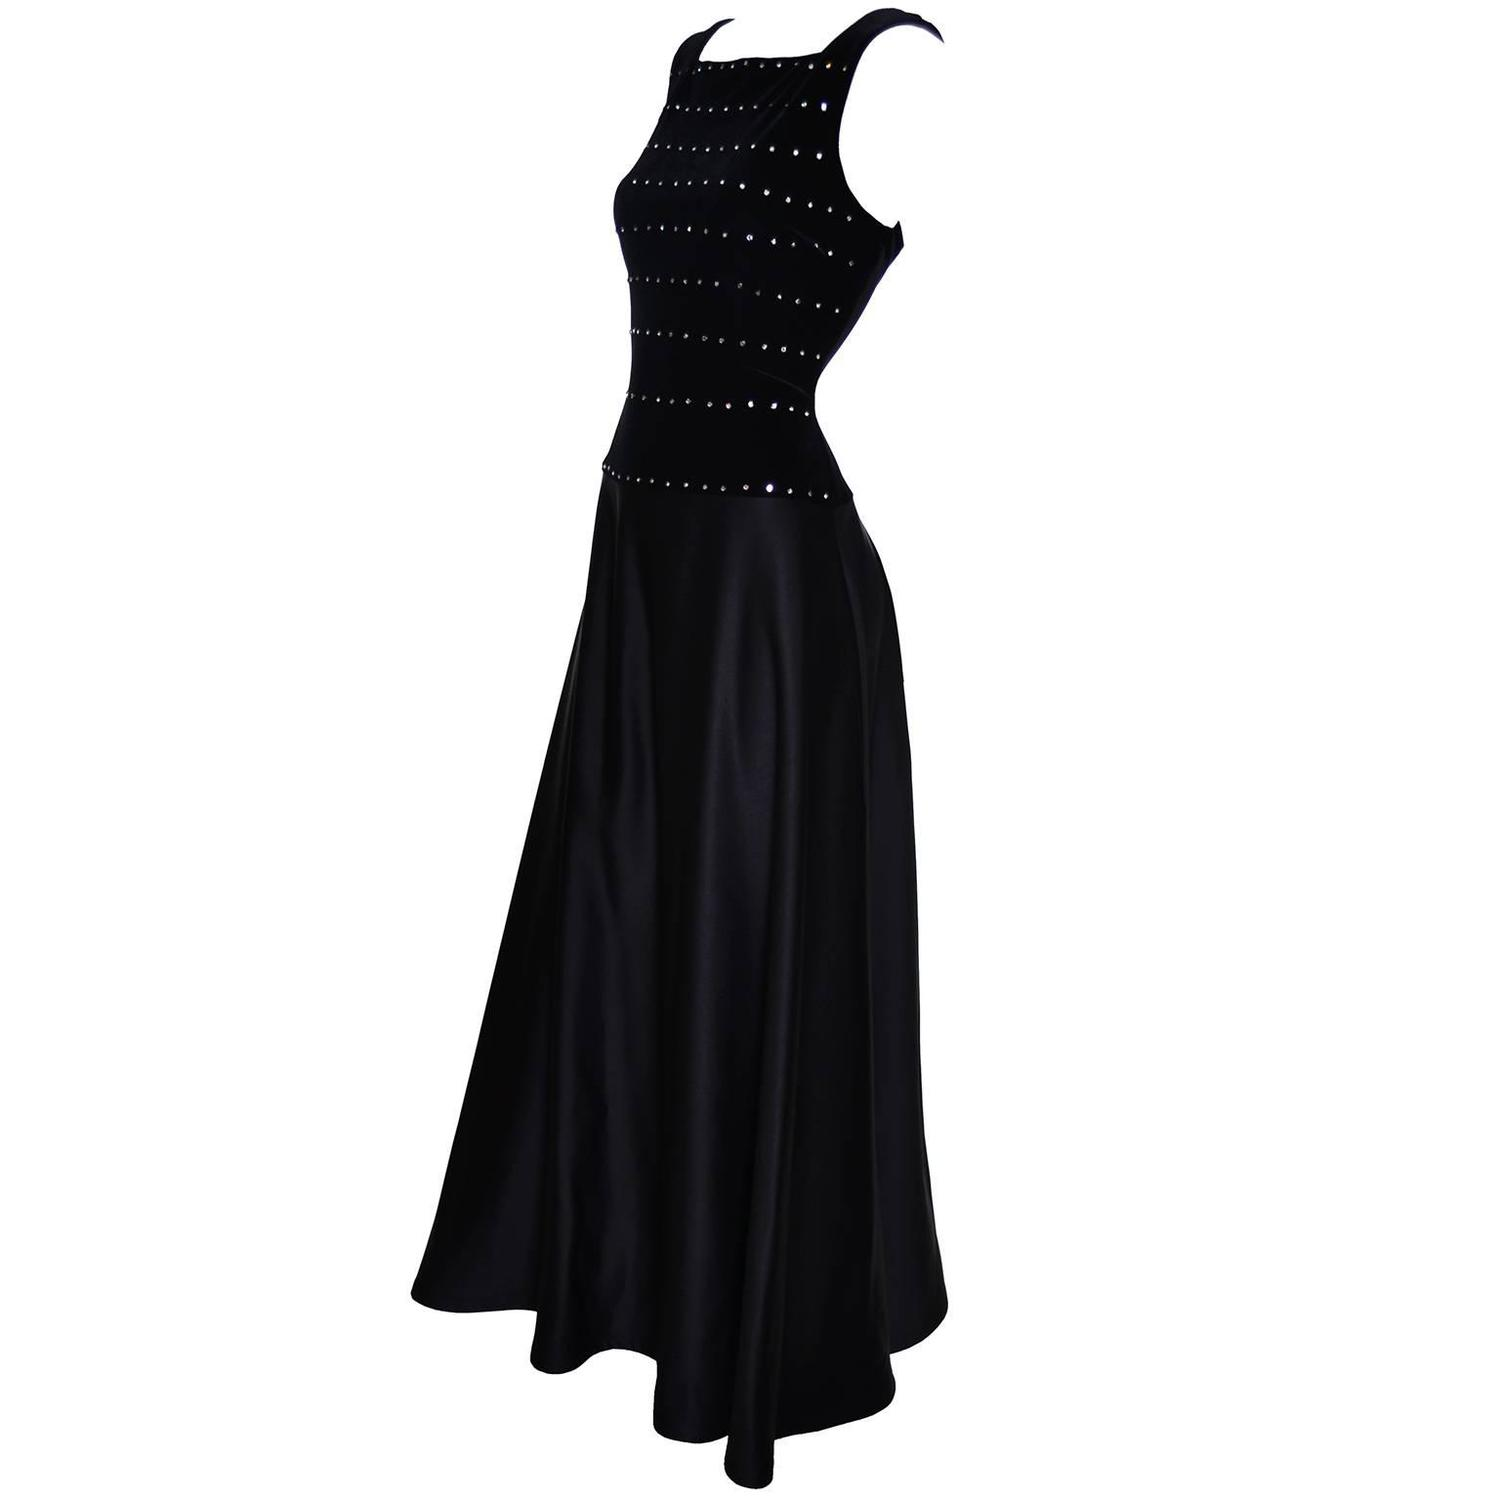 Tadashi Shoji Vintage Dress Black Satin Velvet Evening Gown ...